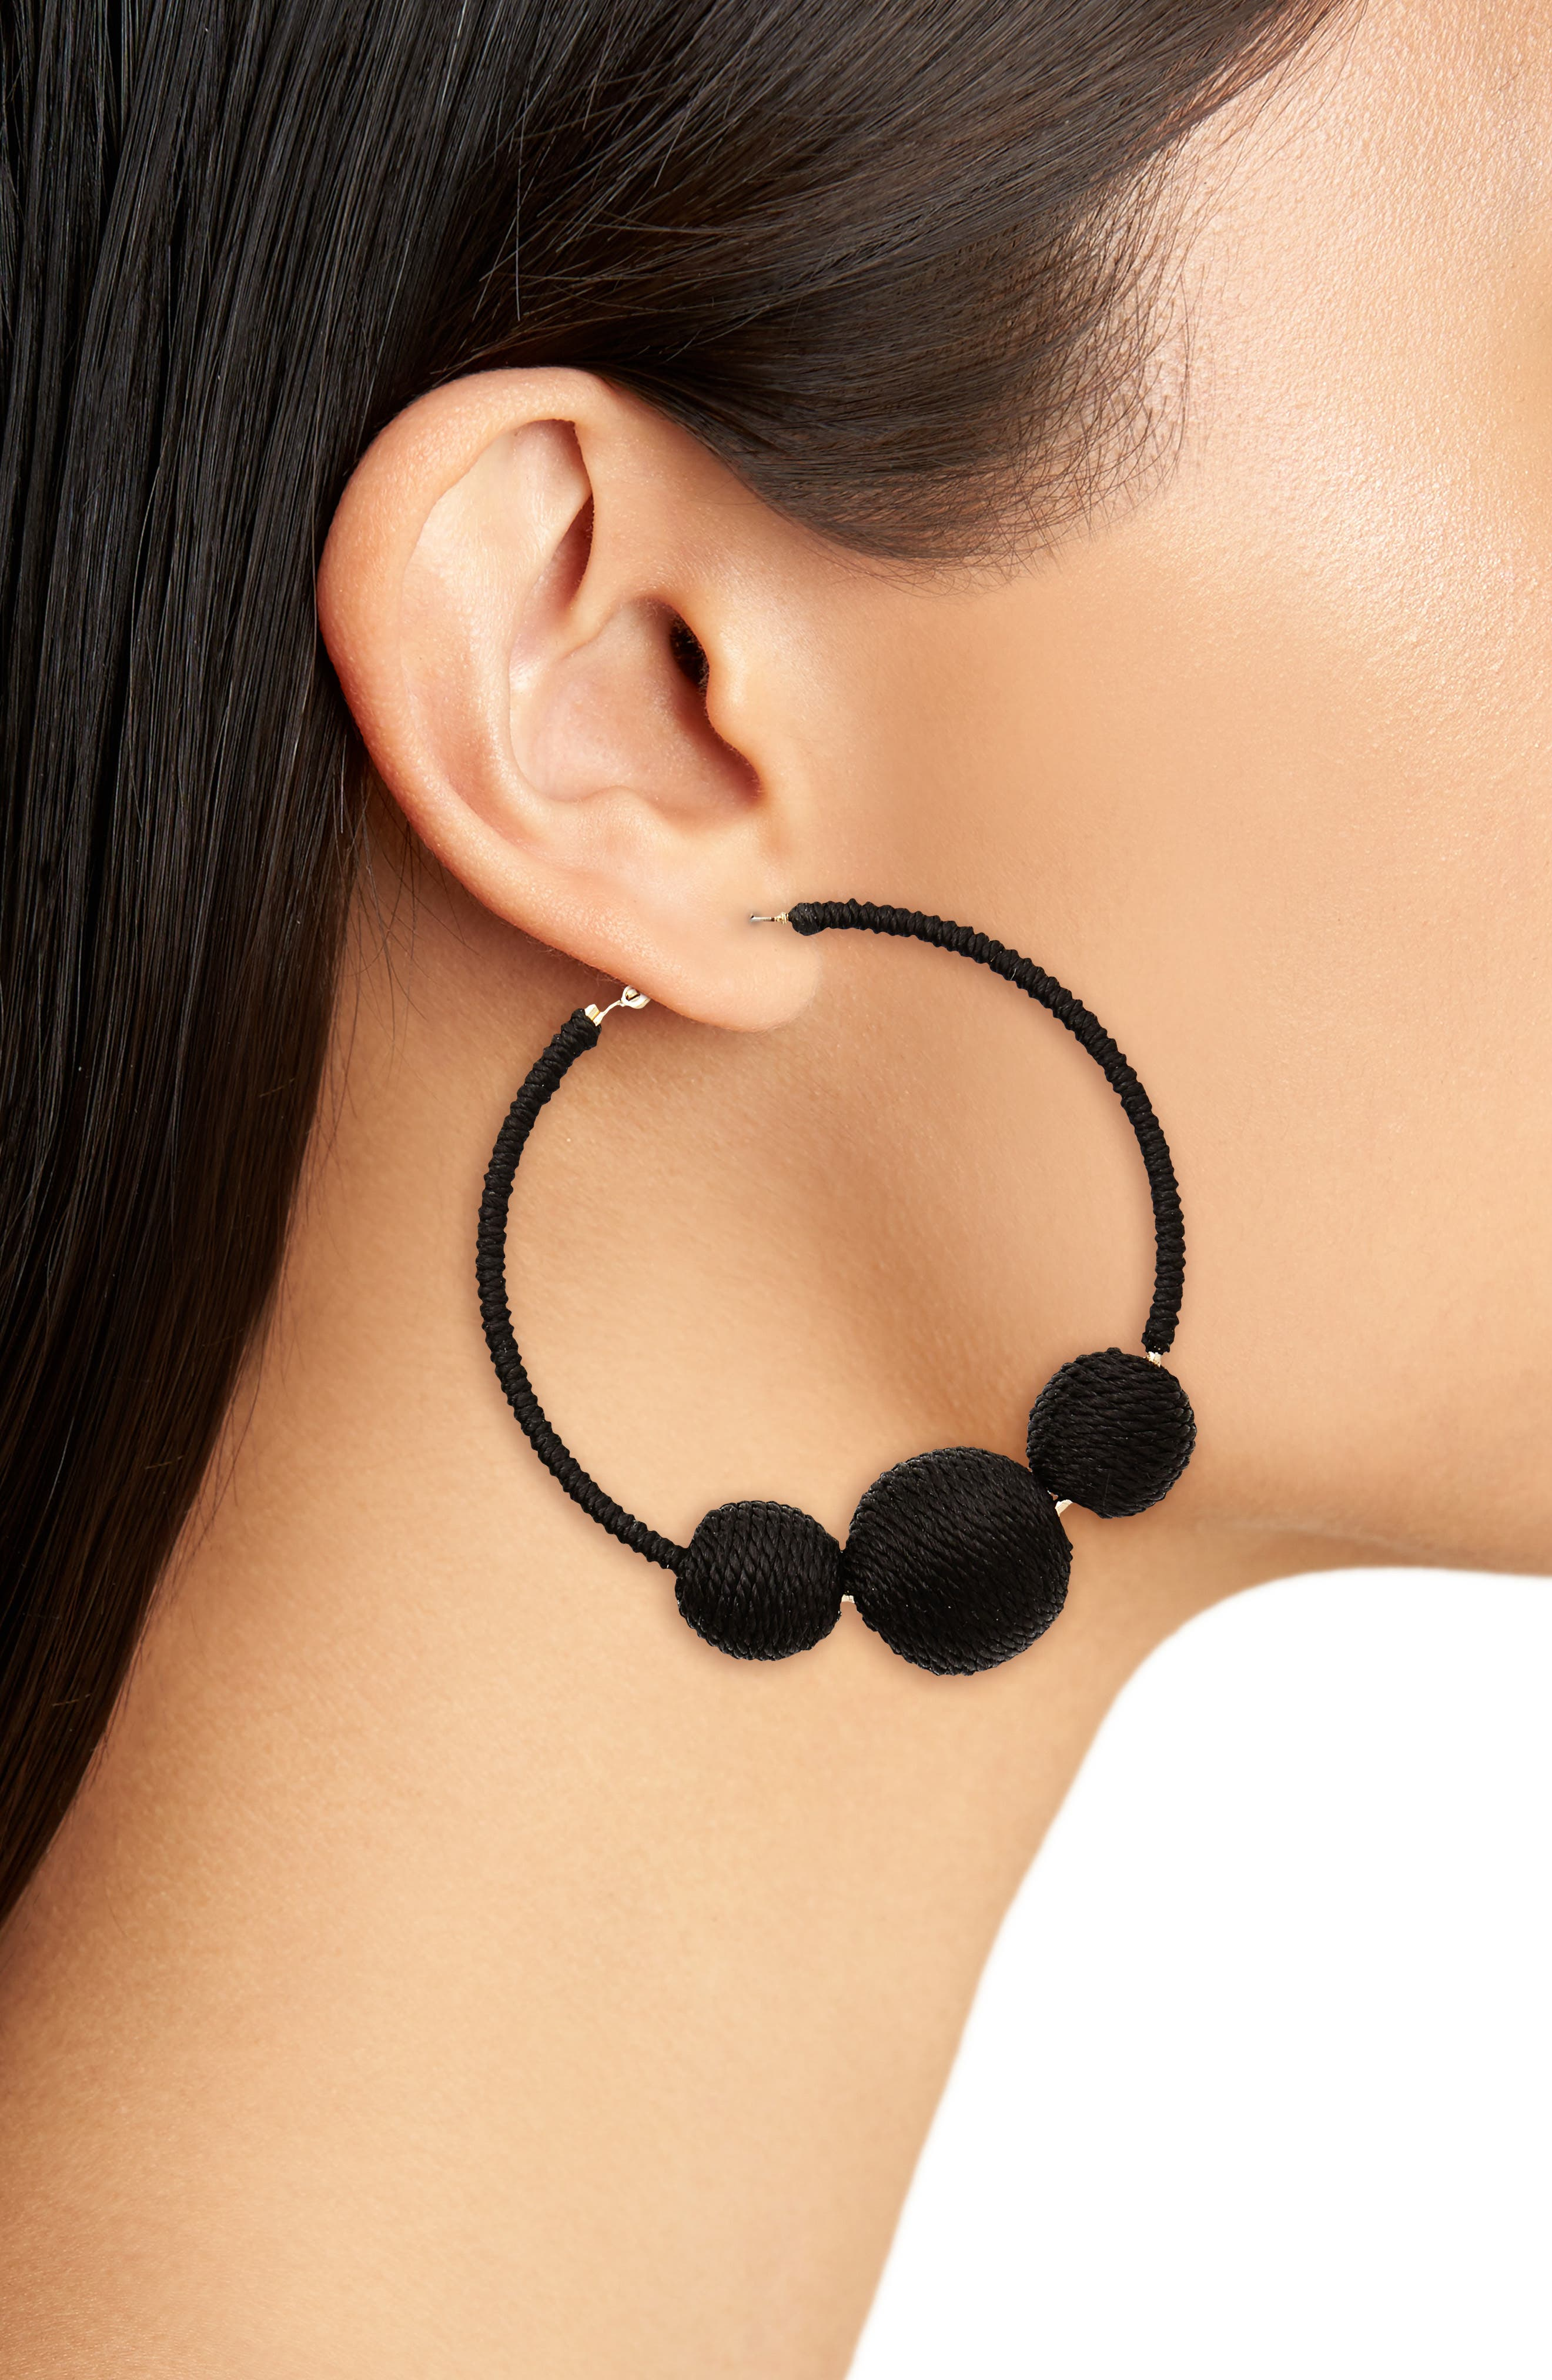 Wrapped Ball Hoop Earrings,                             Alternate thumbnail 2, color,                             Black